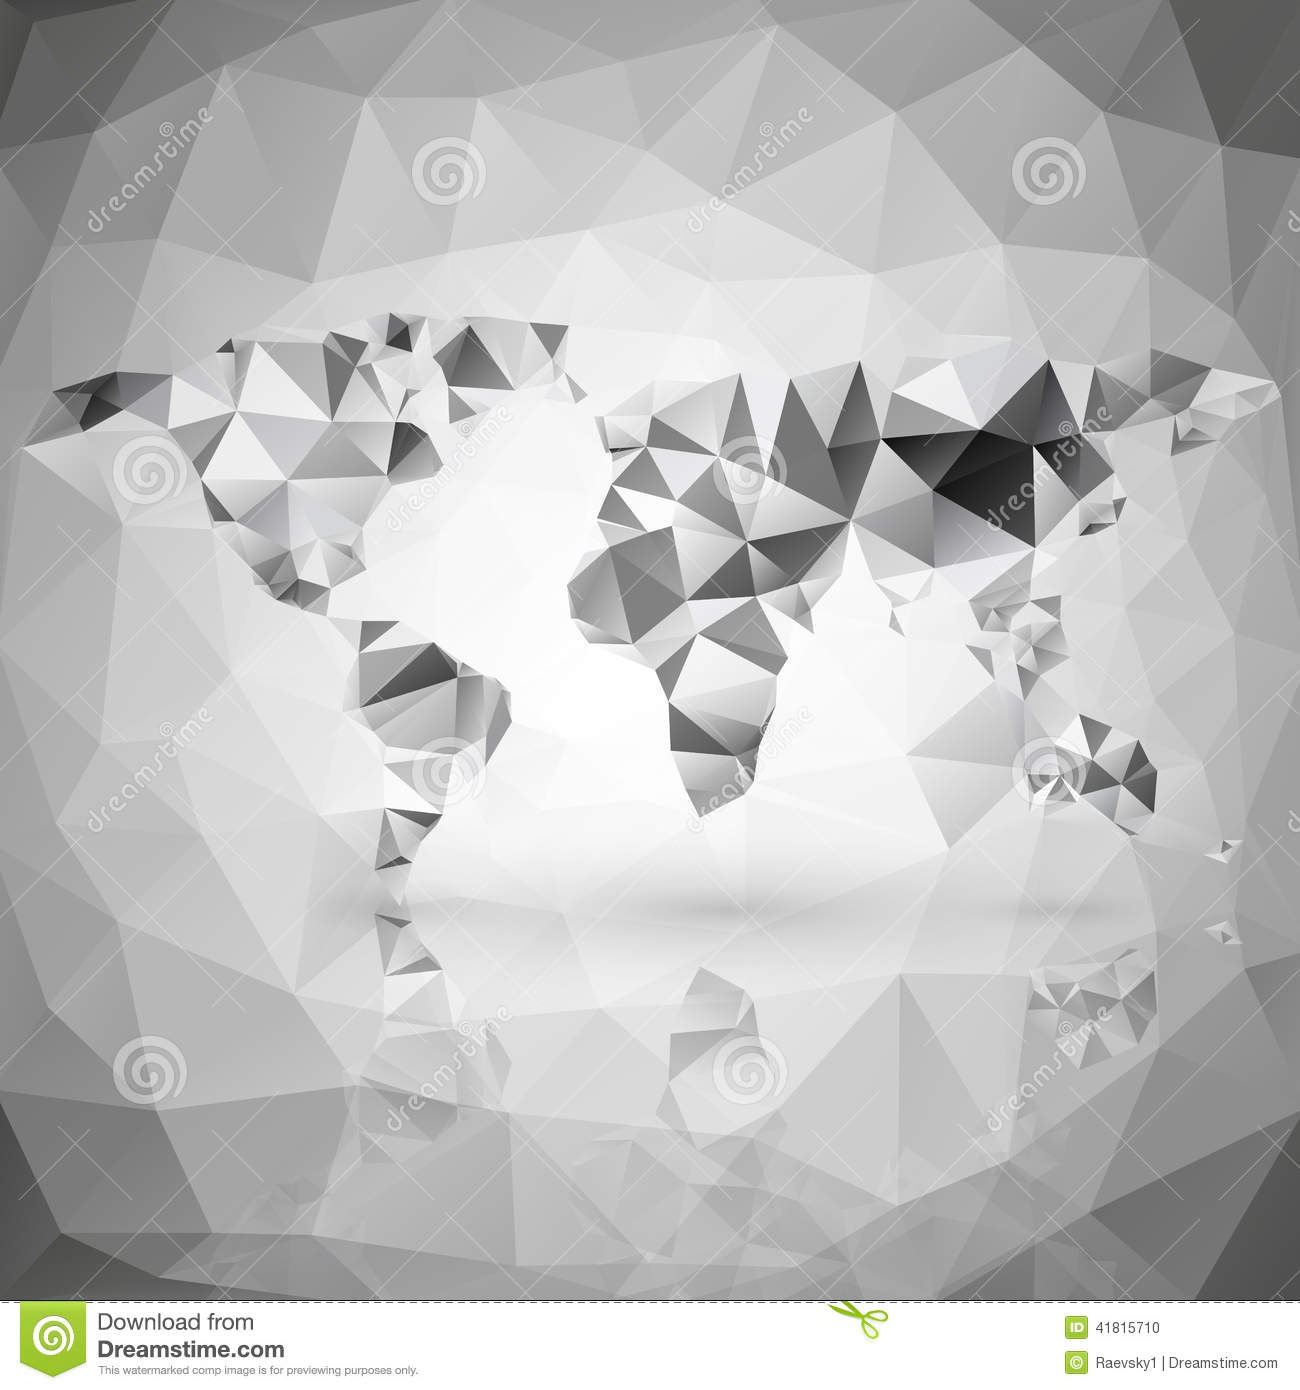 World map triangle design vector illustration stock vector world map triangle design vector illustration gumiabroncs Gallery